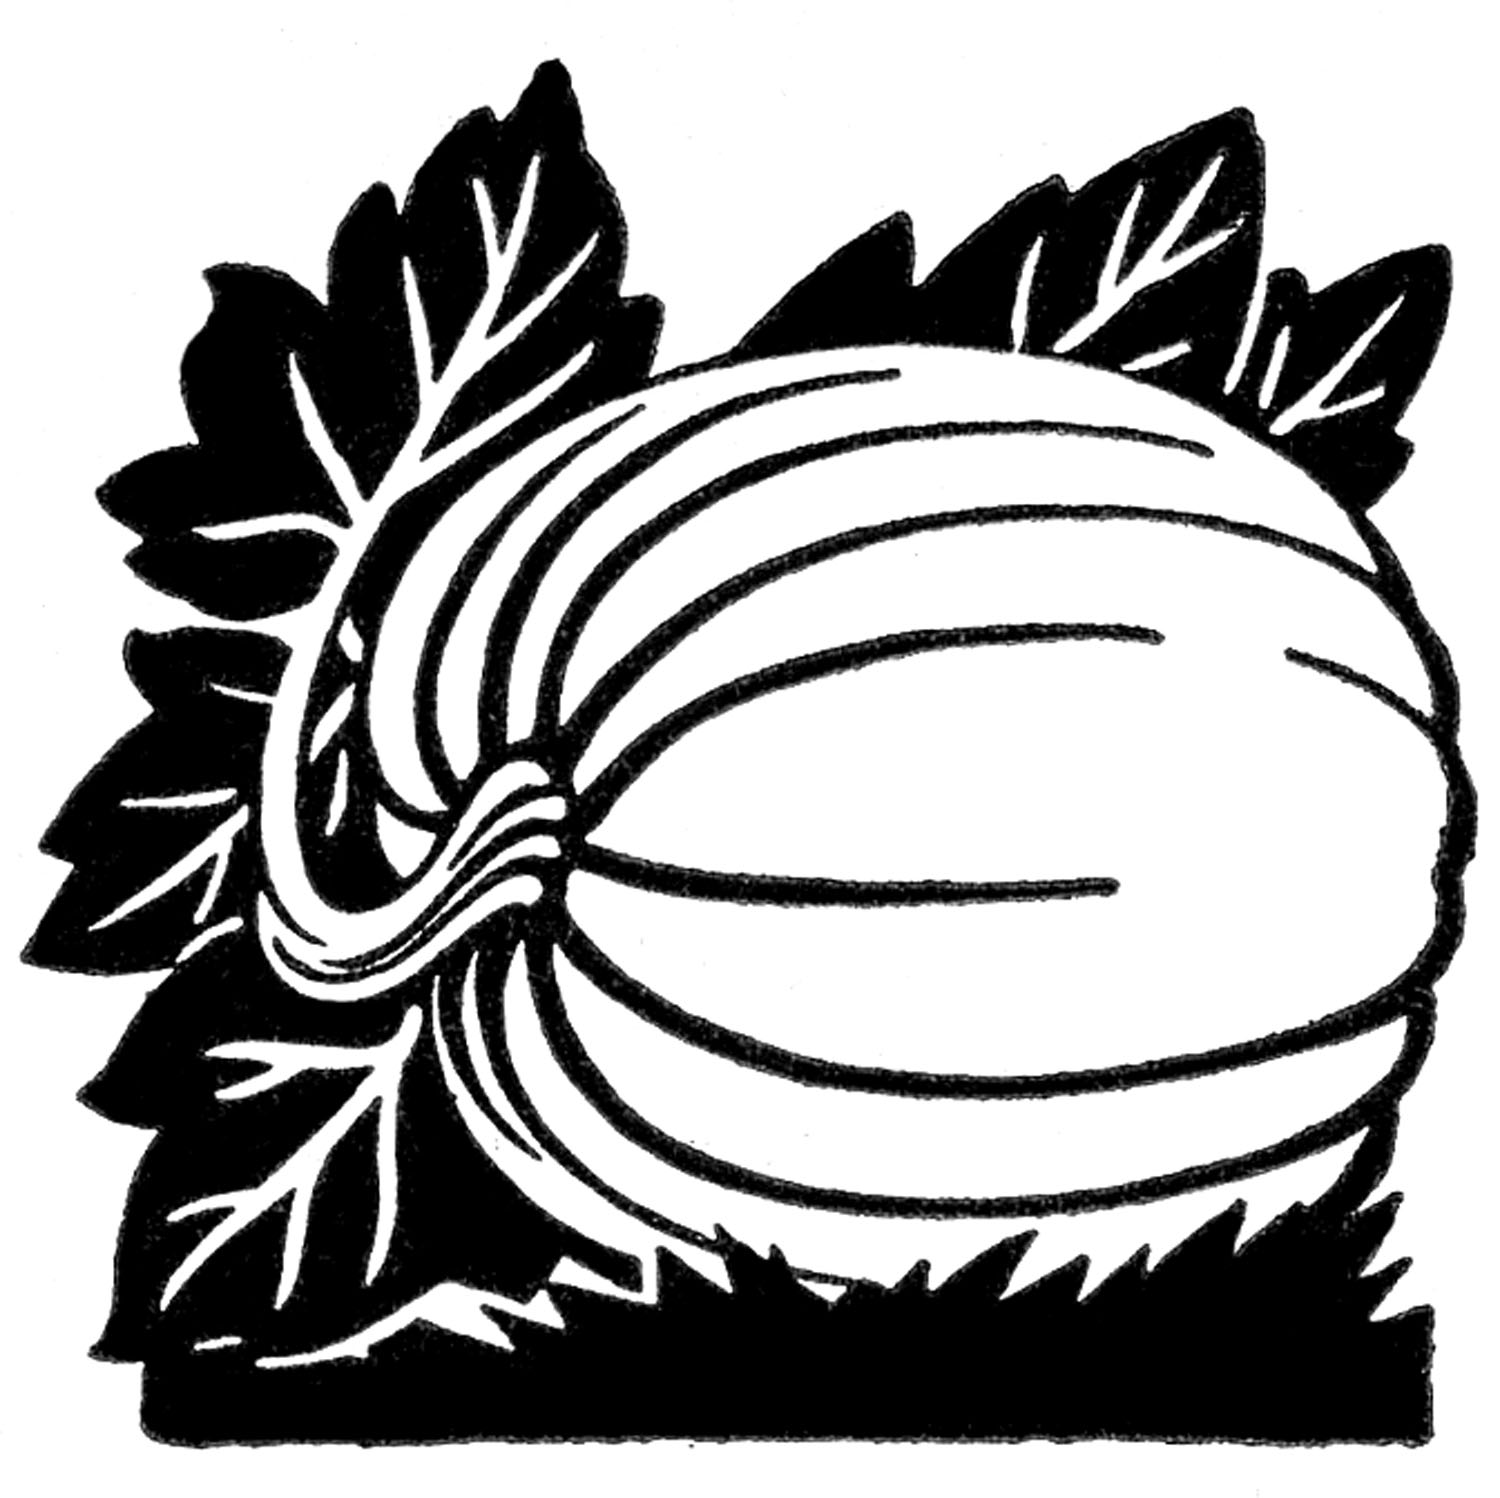 1500x1498 Pumpkin Black And White Pumpkin Clipart Black And White Vines Free